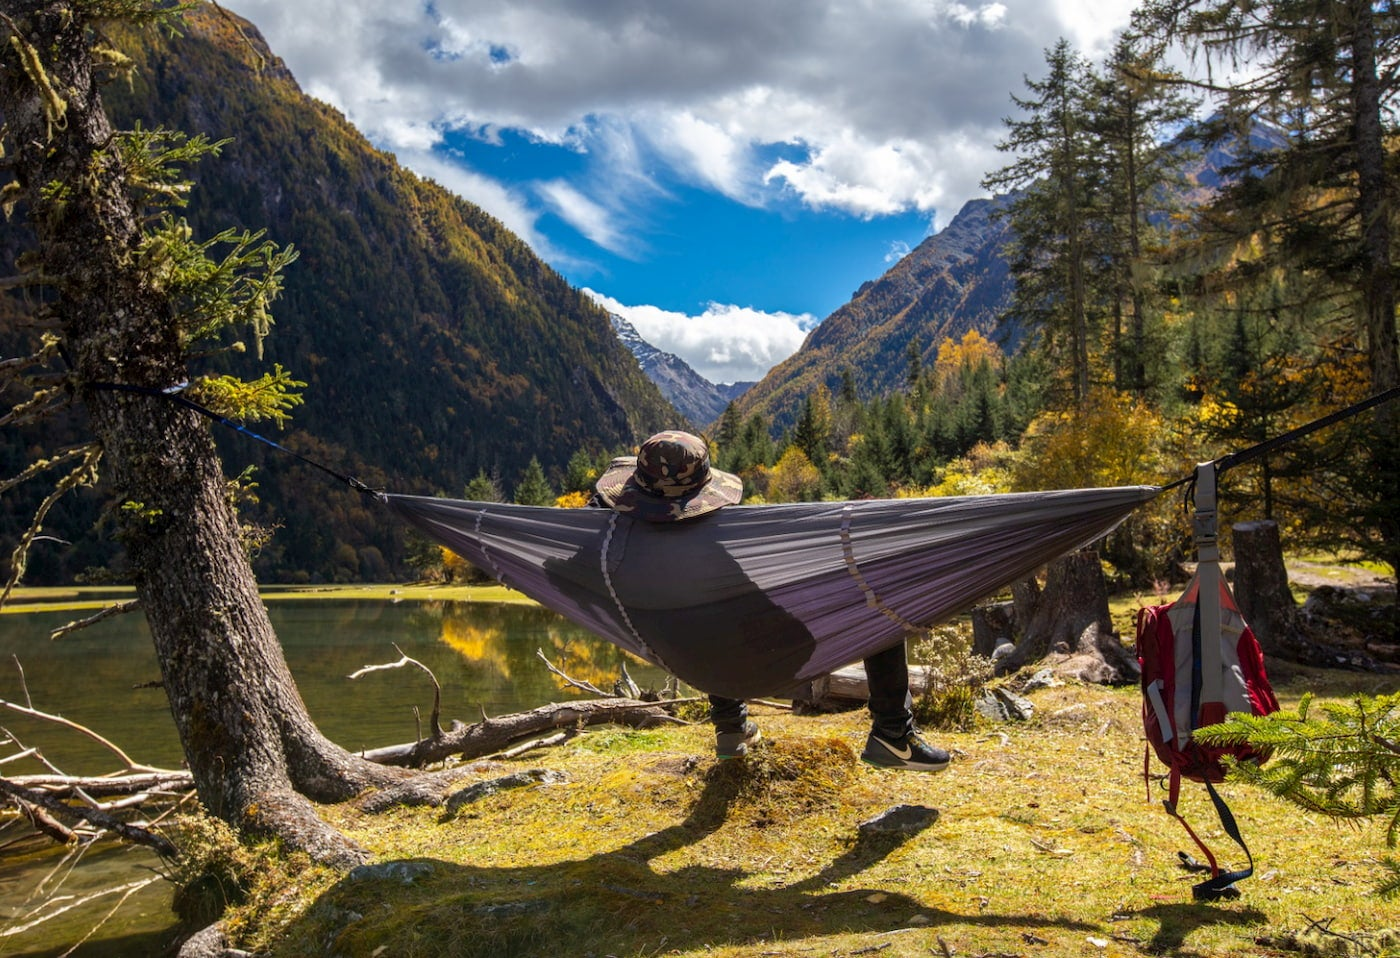 Person lounging in camping hammock with built in bug net in the mountains.